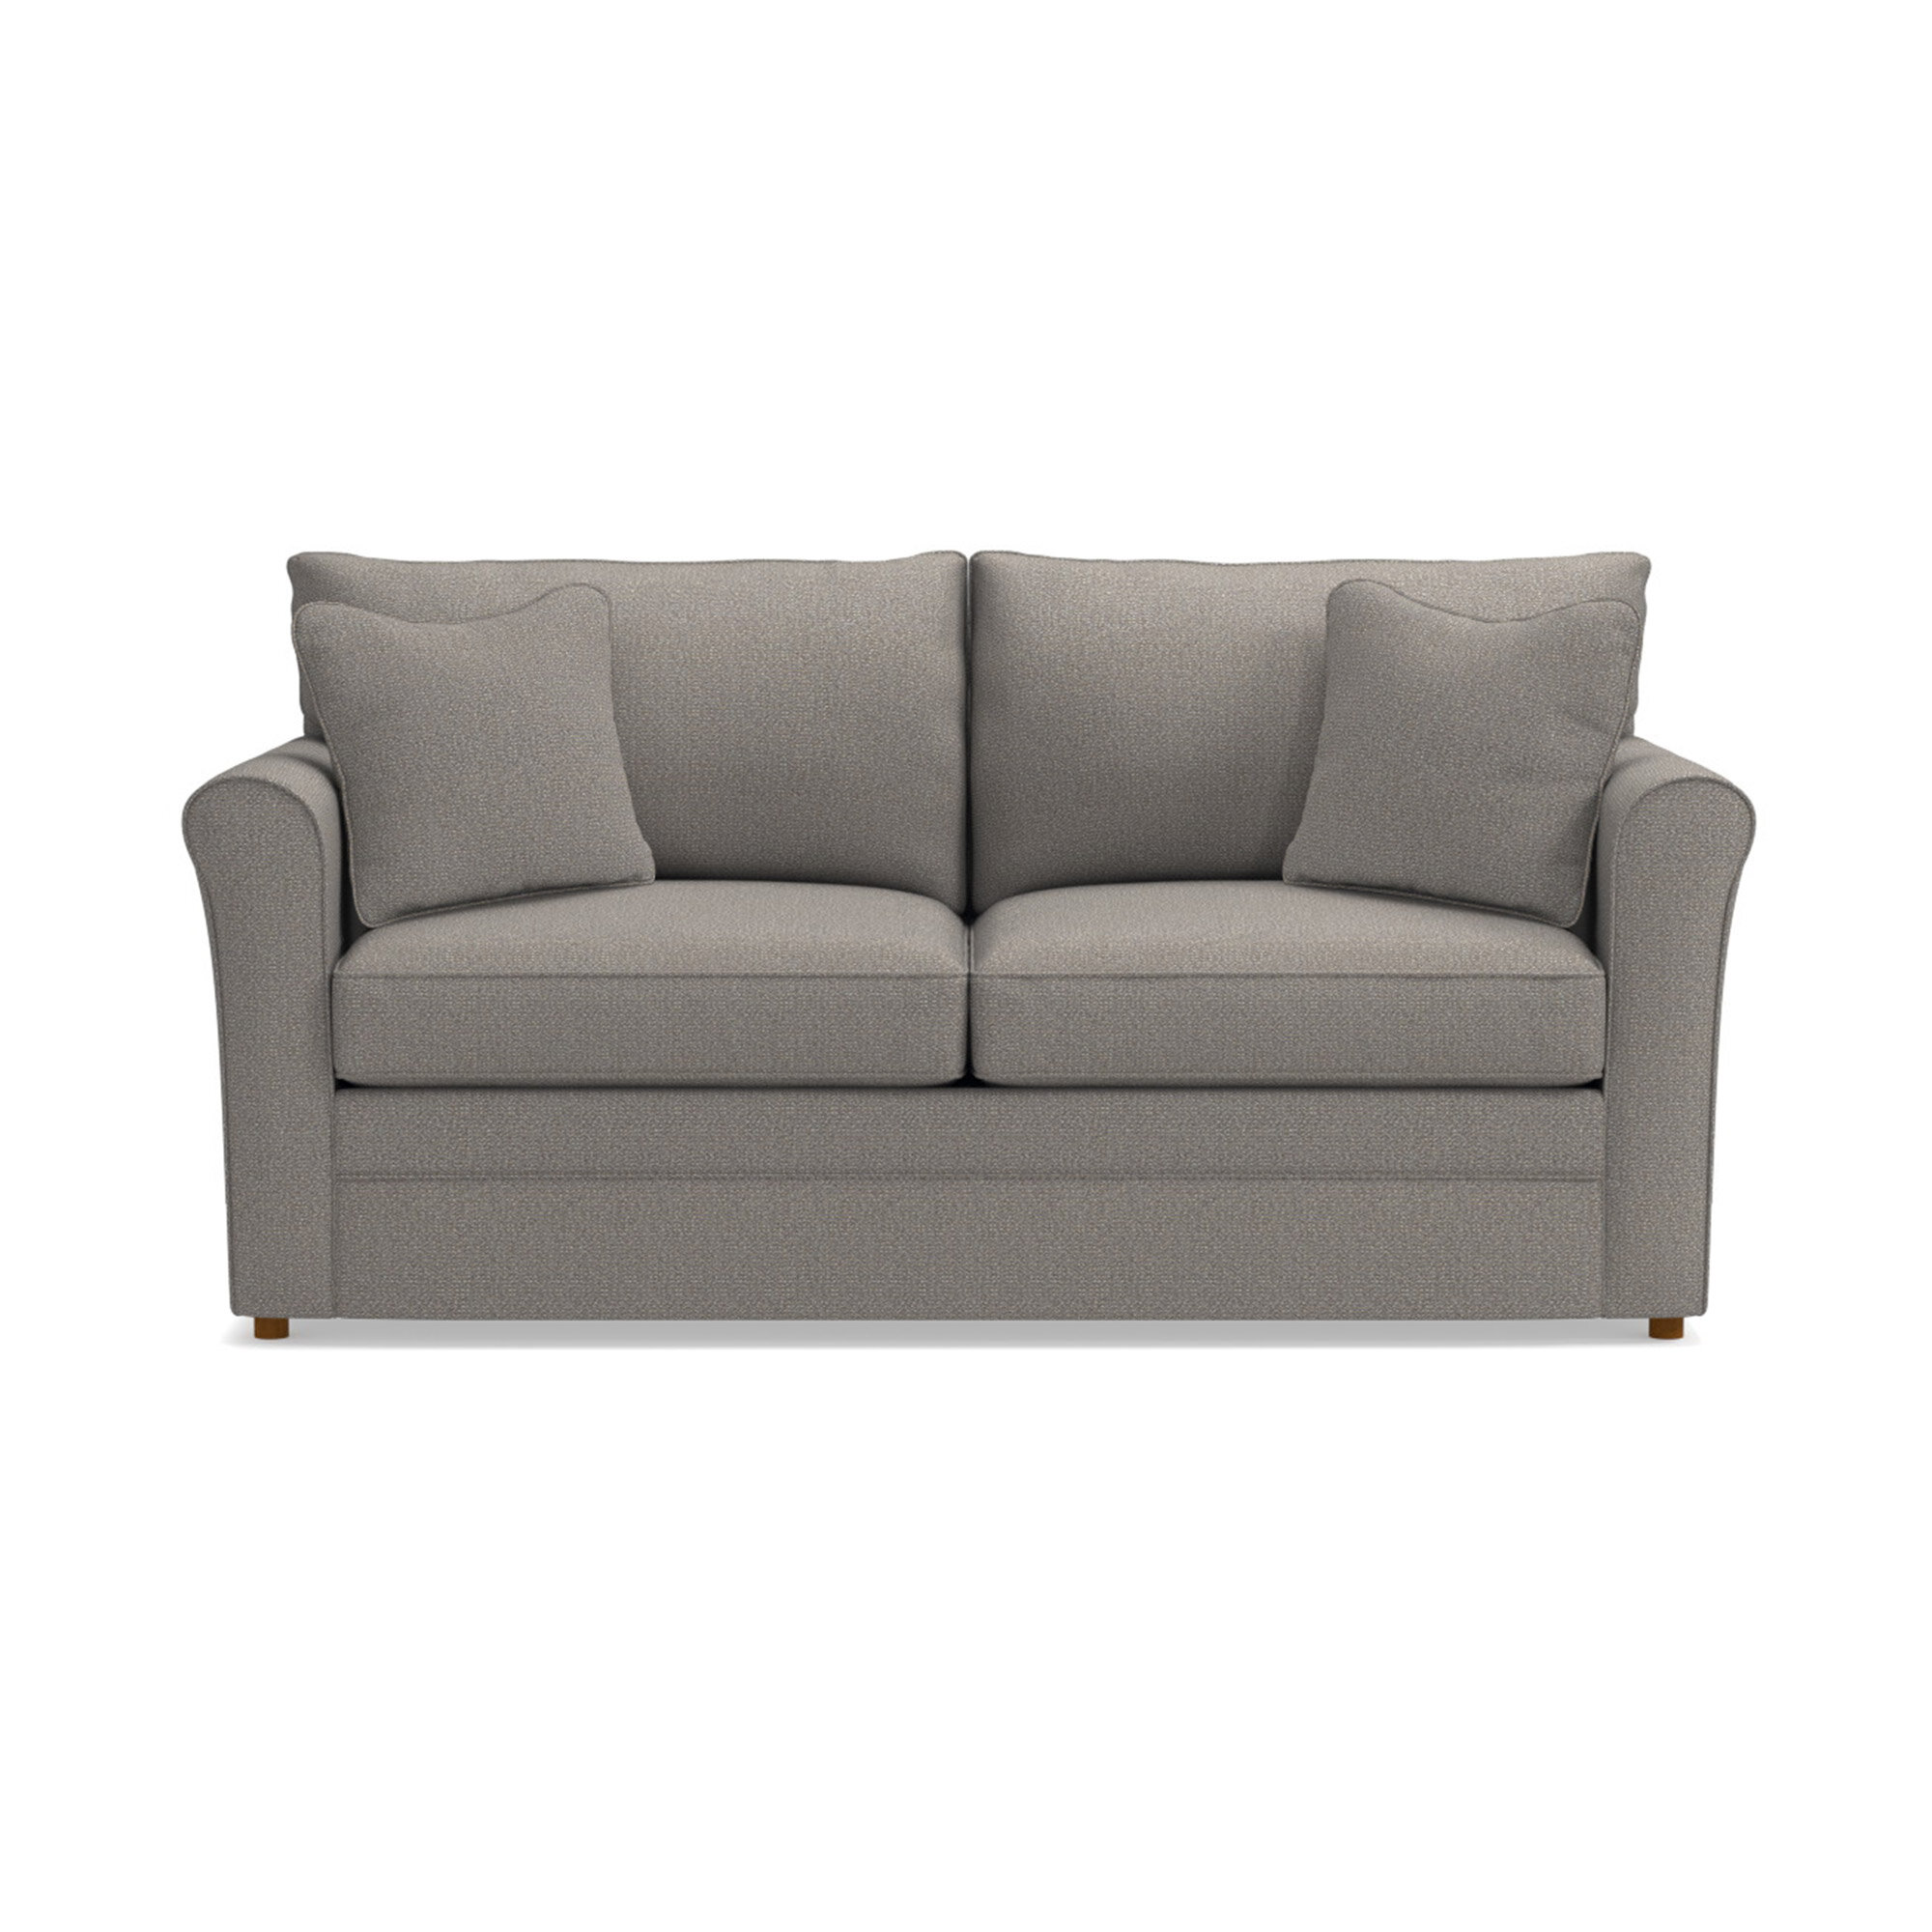 La-Z-Boy Leah Supreme Comfort™ Sofa Bed